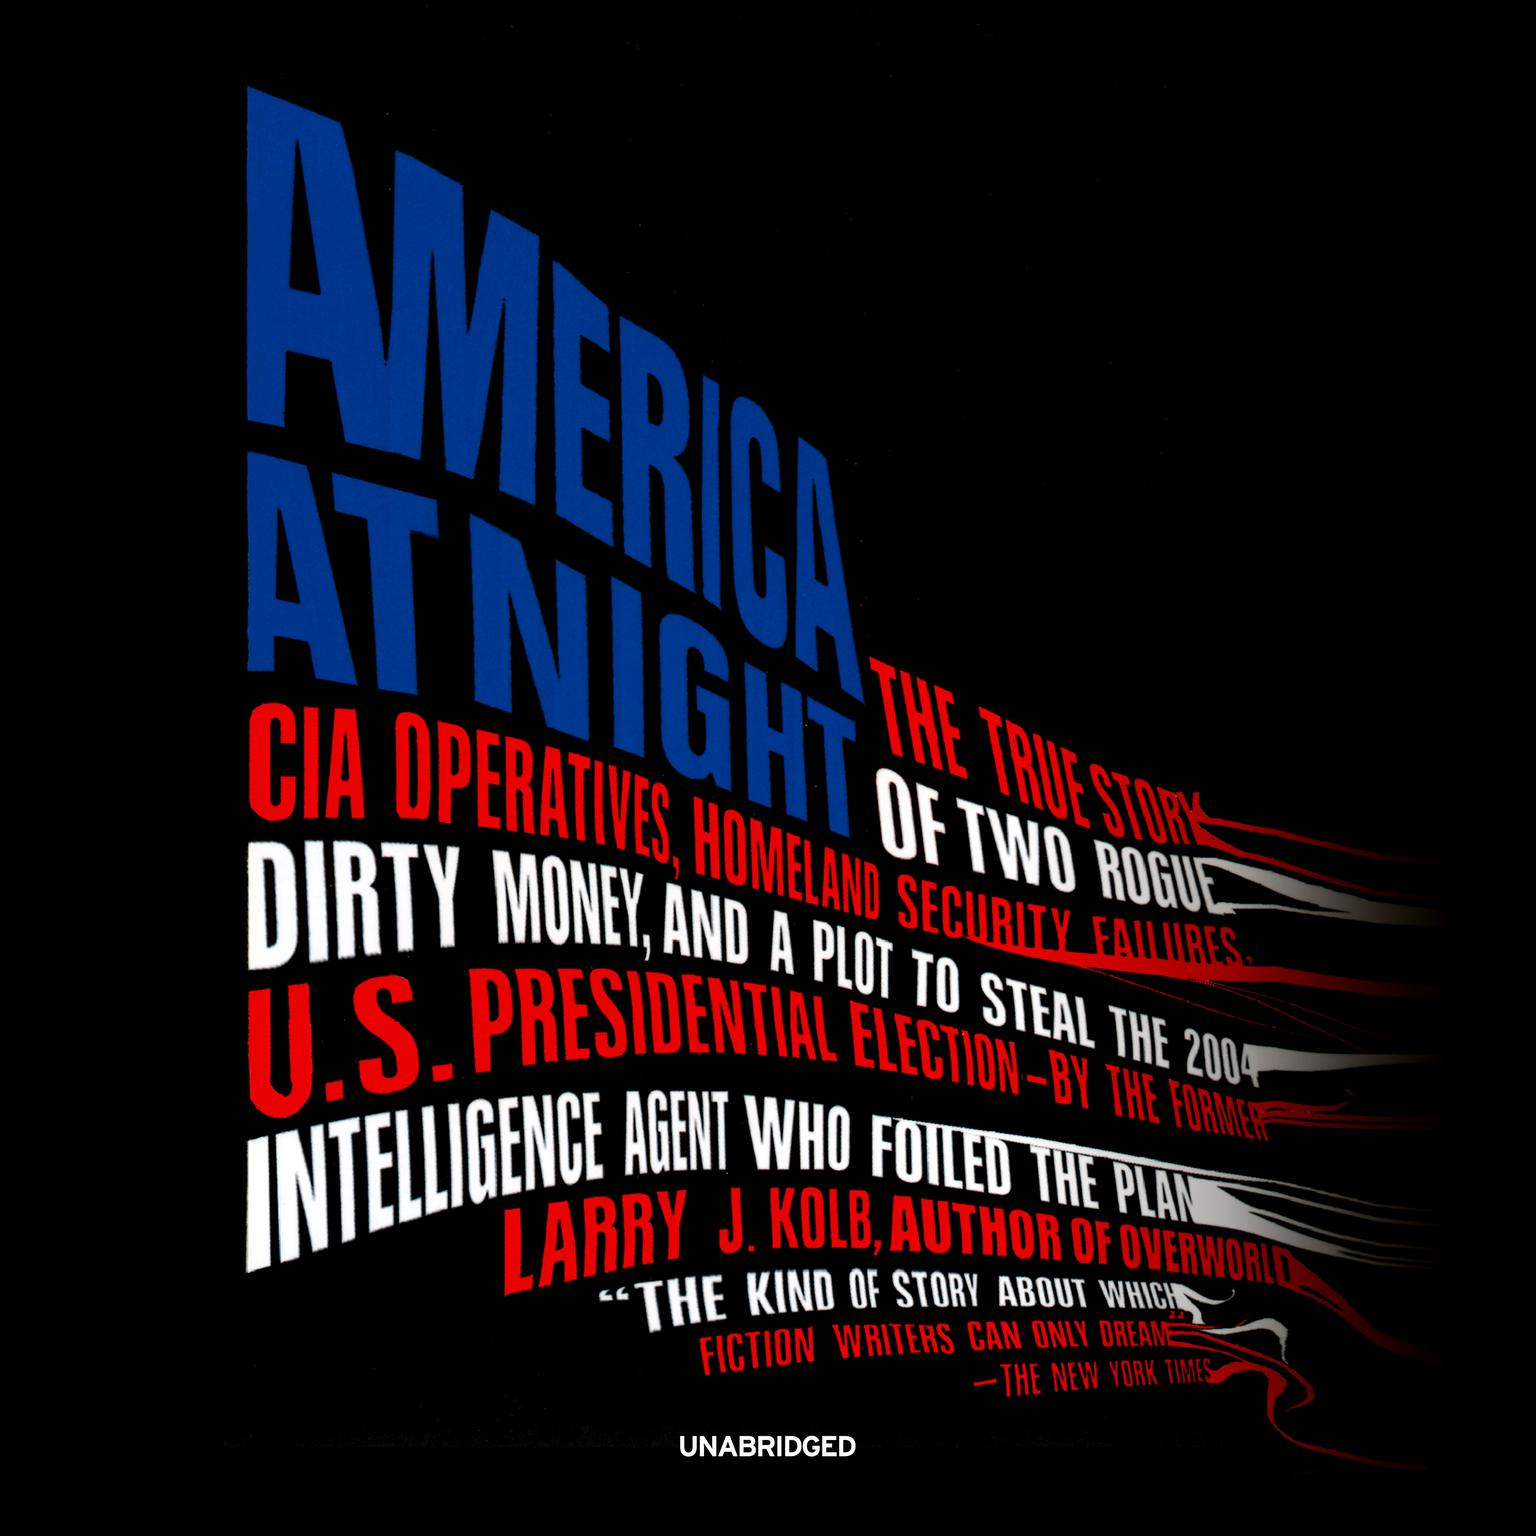 Printable America at Night: The True Story of Two Rogue CIA Operatives, Homeland Security Failures, Dirty Money, and a Plot to Steal the 2004 US Presidential Election—by the Former Intelligence Agent Who Foiled the Plan Audiobook Cover Art